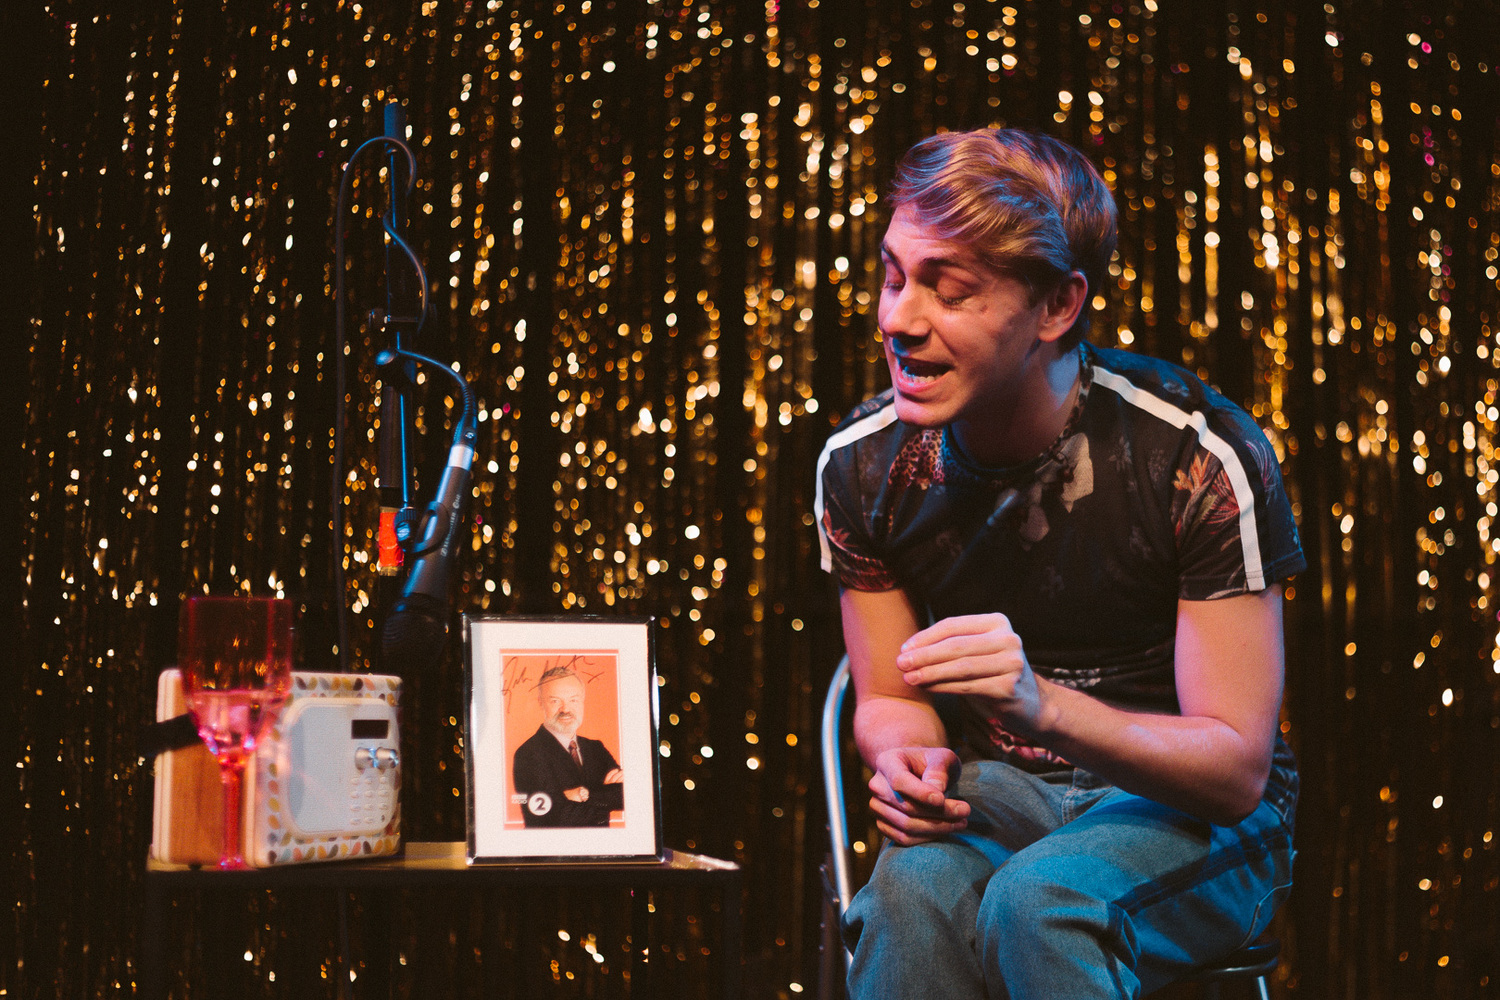 BWW Review: IN CONVERSATION WITH GRAHAM NORTON, The Hope Theatre